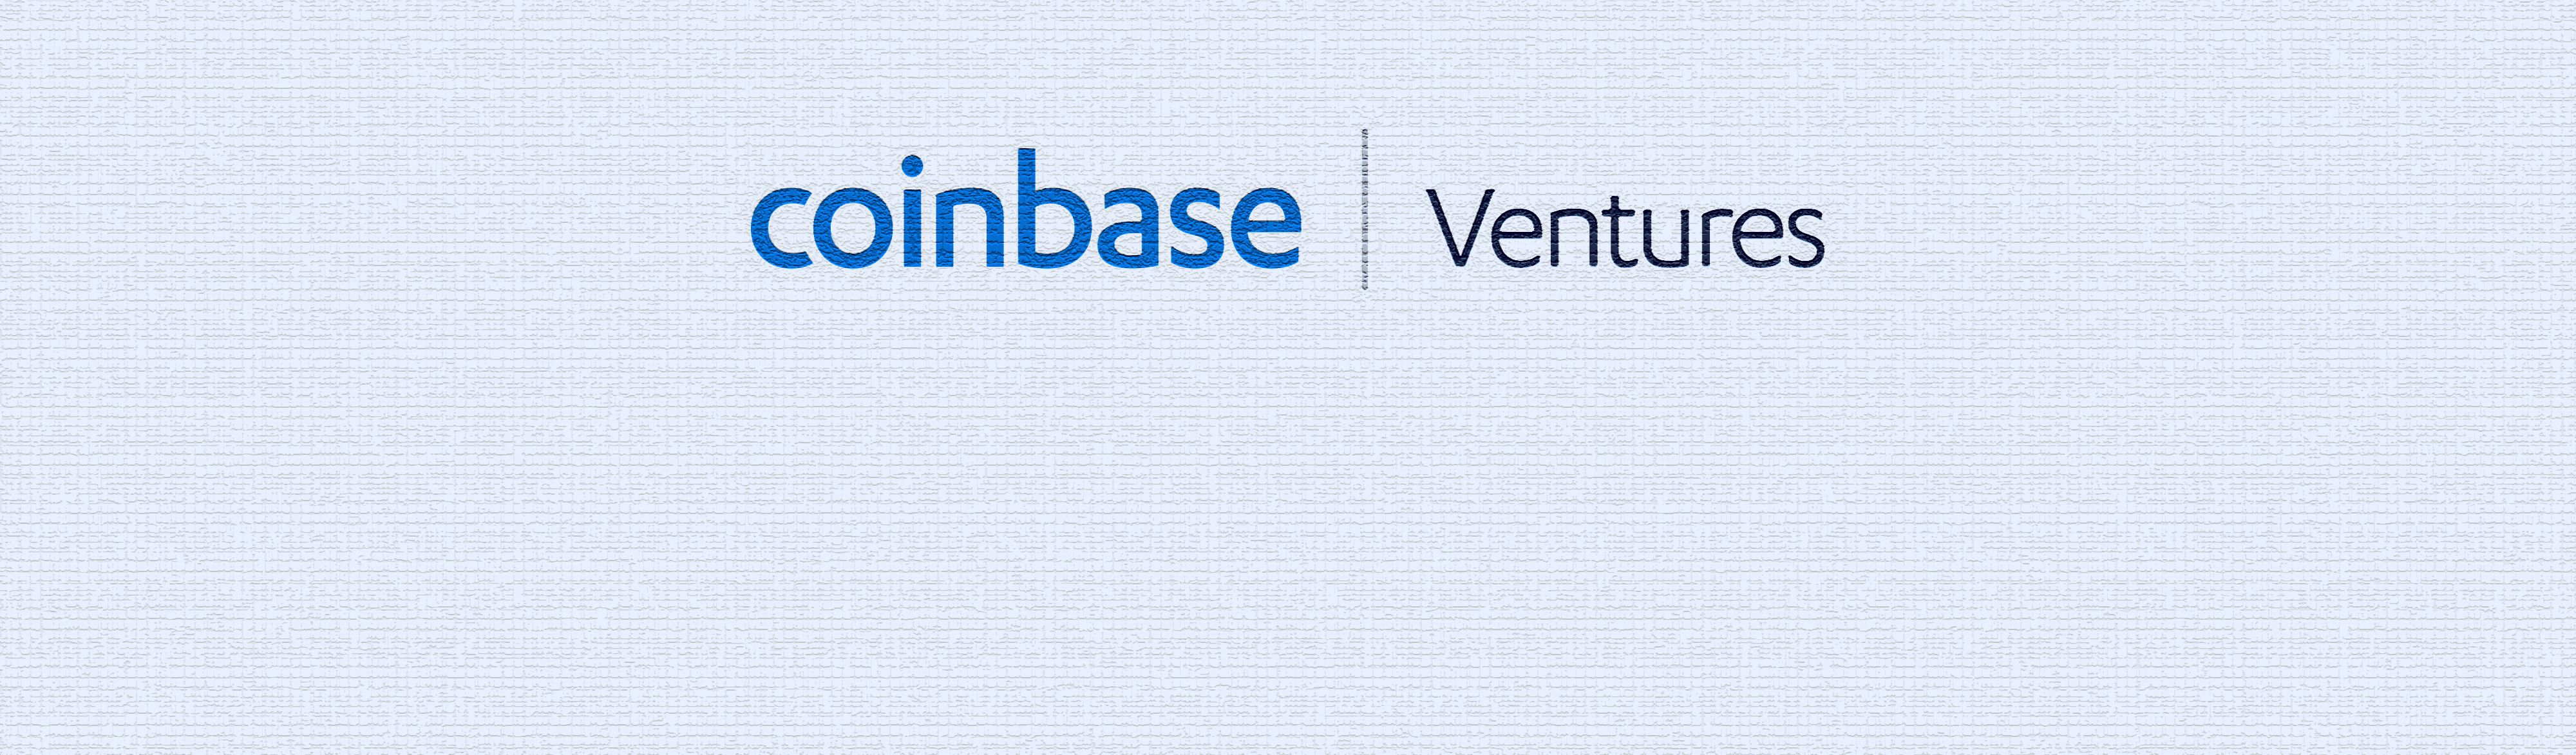 /whats-inside-the-long-term-plans-of-the-coinbase-ventures-portfolio-di1j3w90 feature image